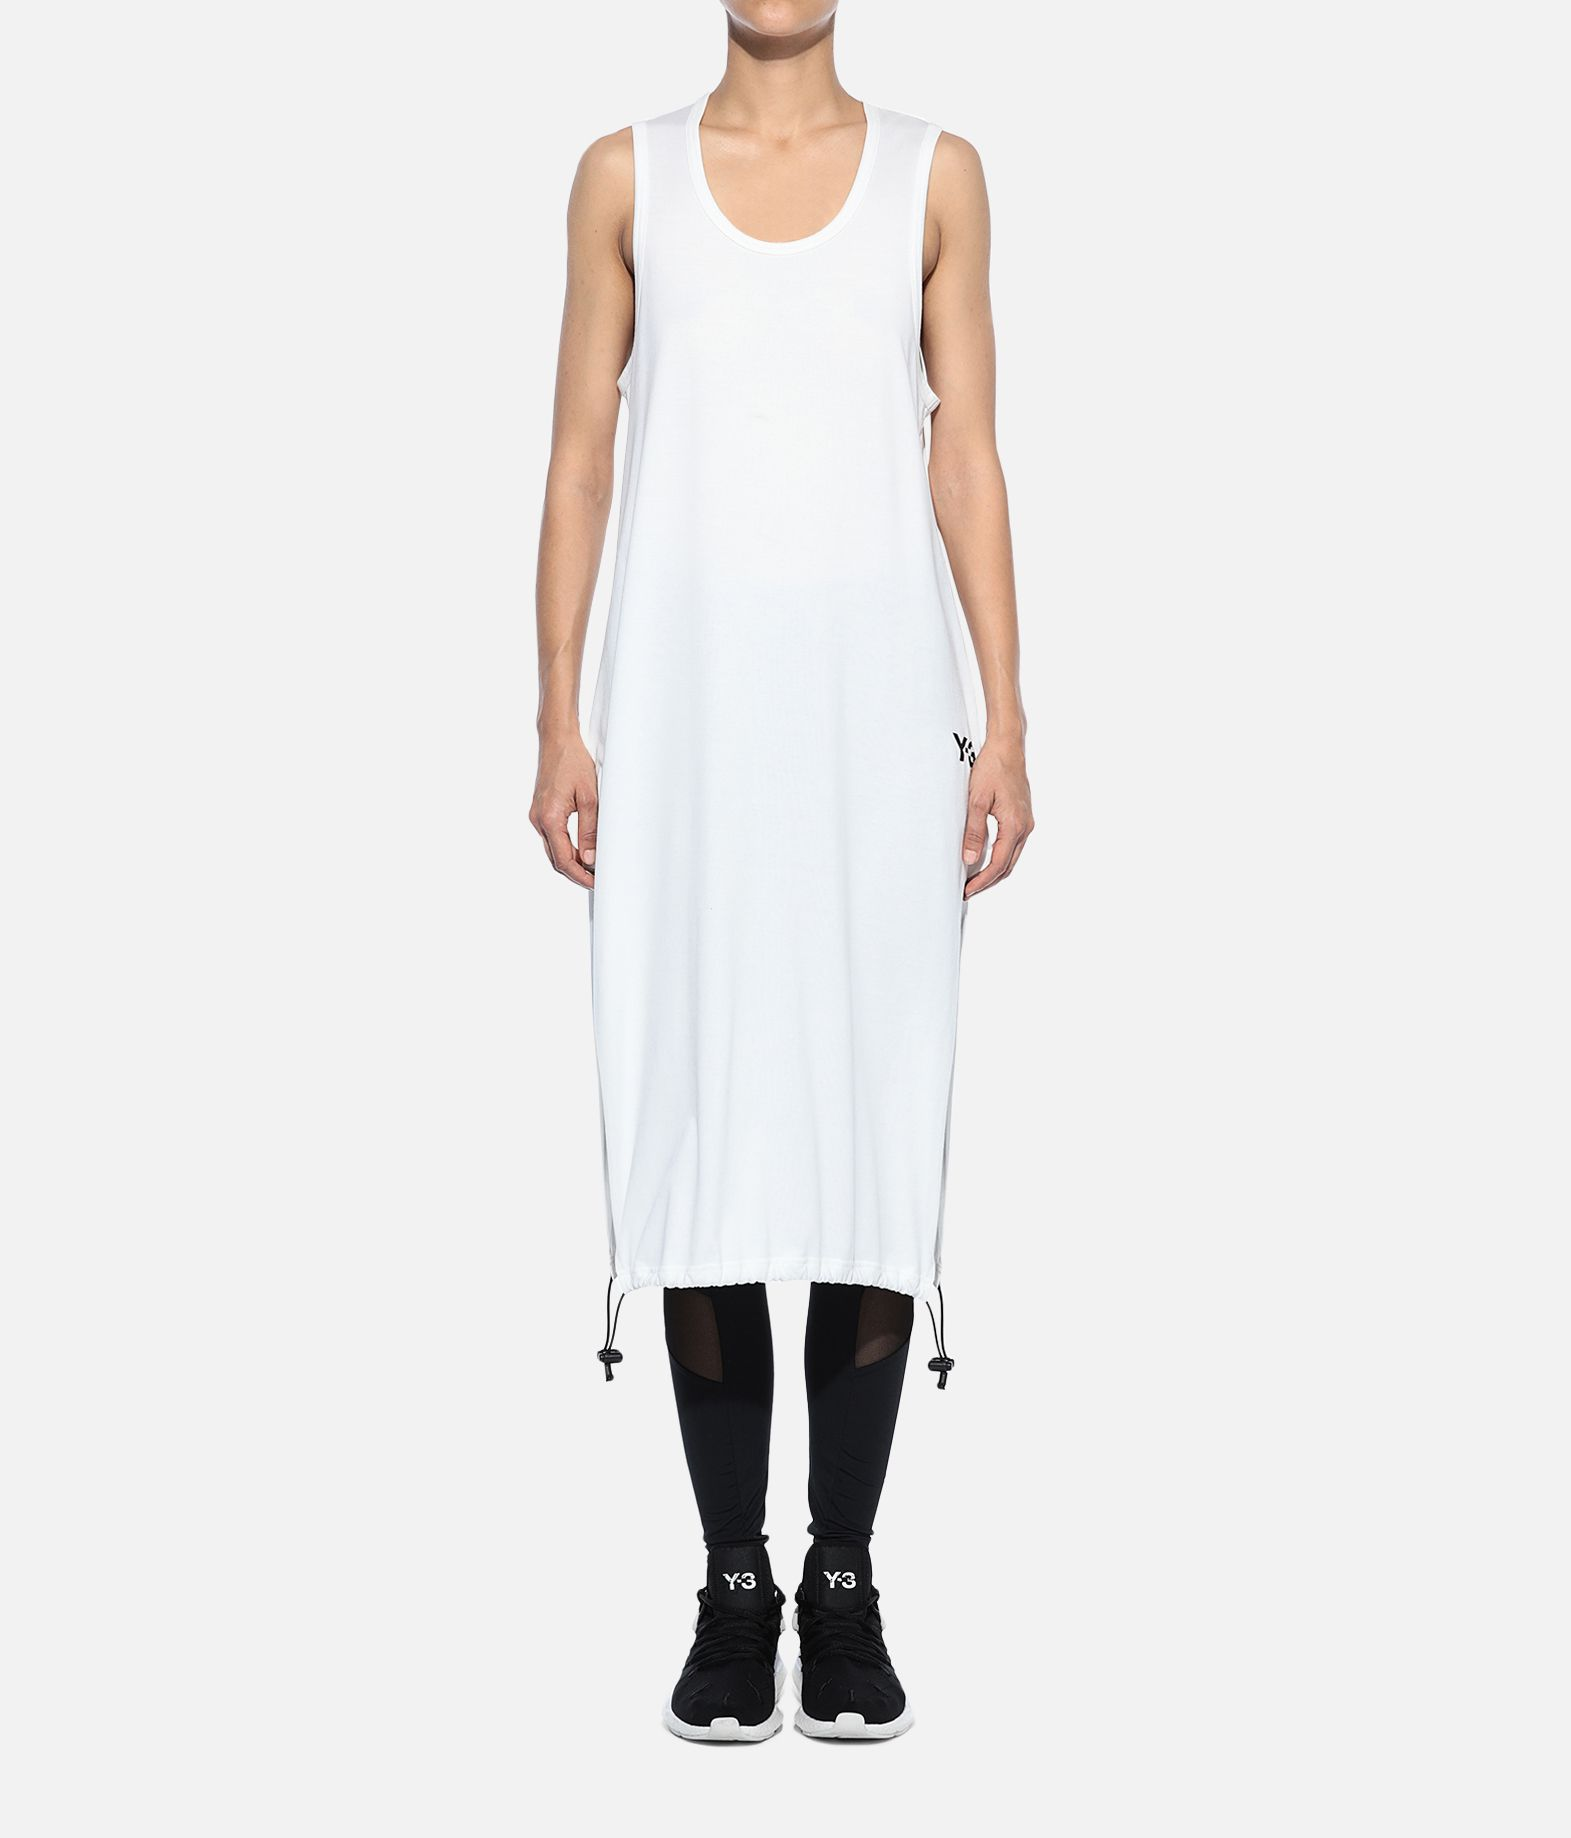 Y-3 Y-3 Drawstring Long Tank Top Sleeveless t-shirt Woman r